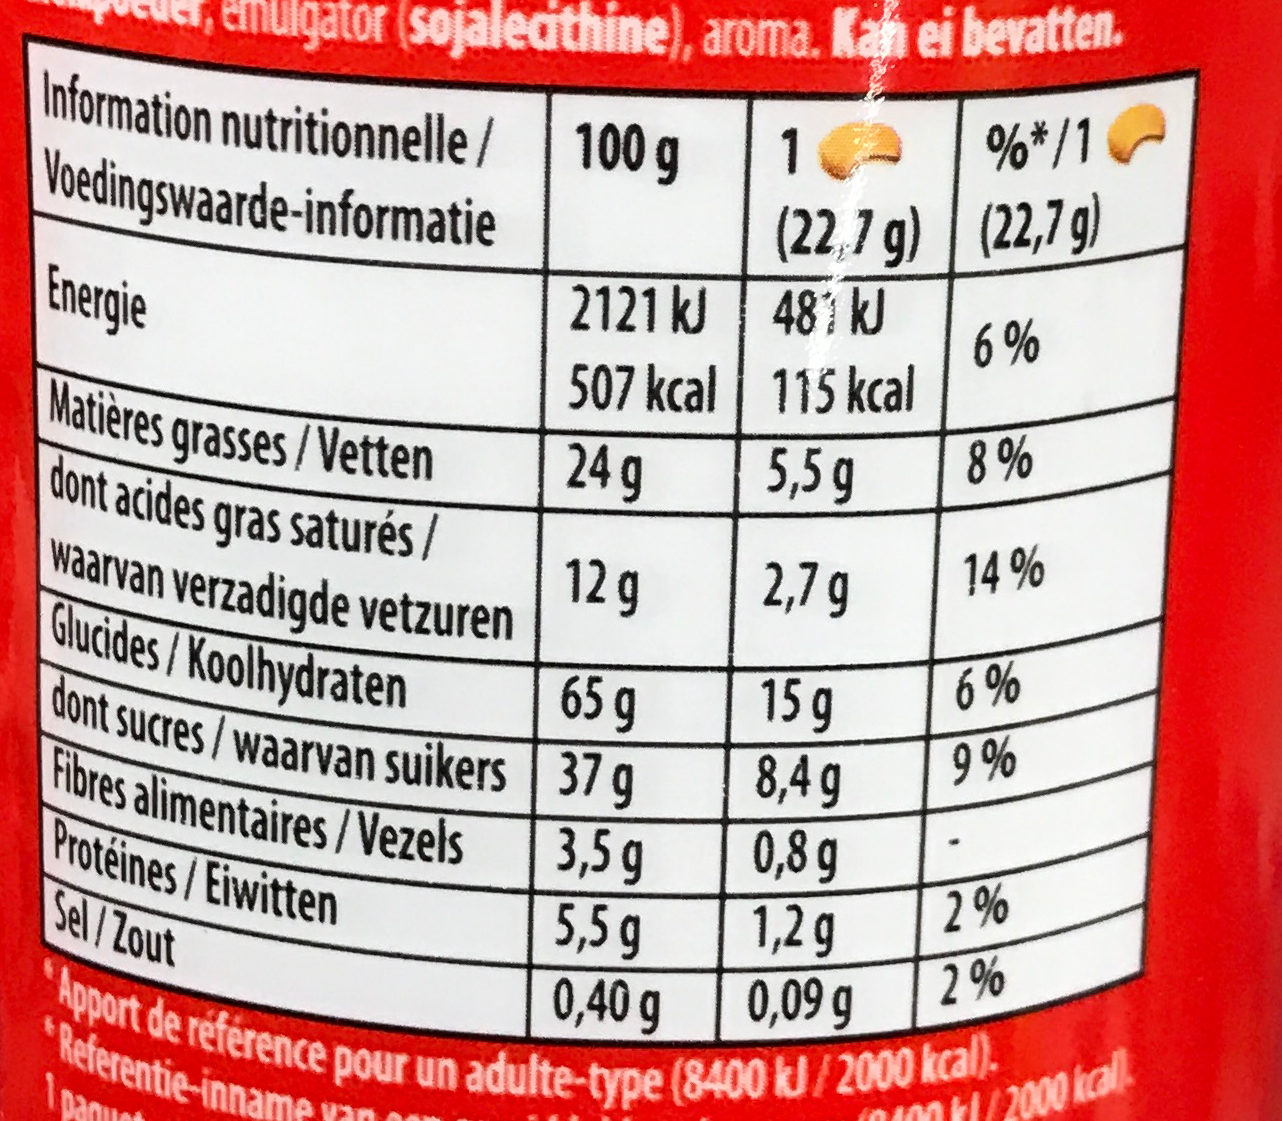 Prince Maxi Gourmand Extra Goût Chocolat - Informations nutritionnelles